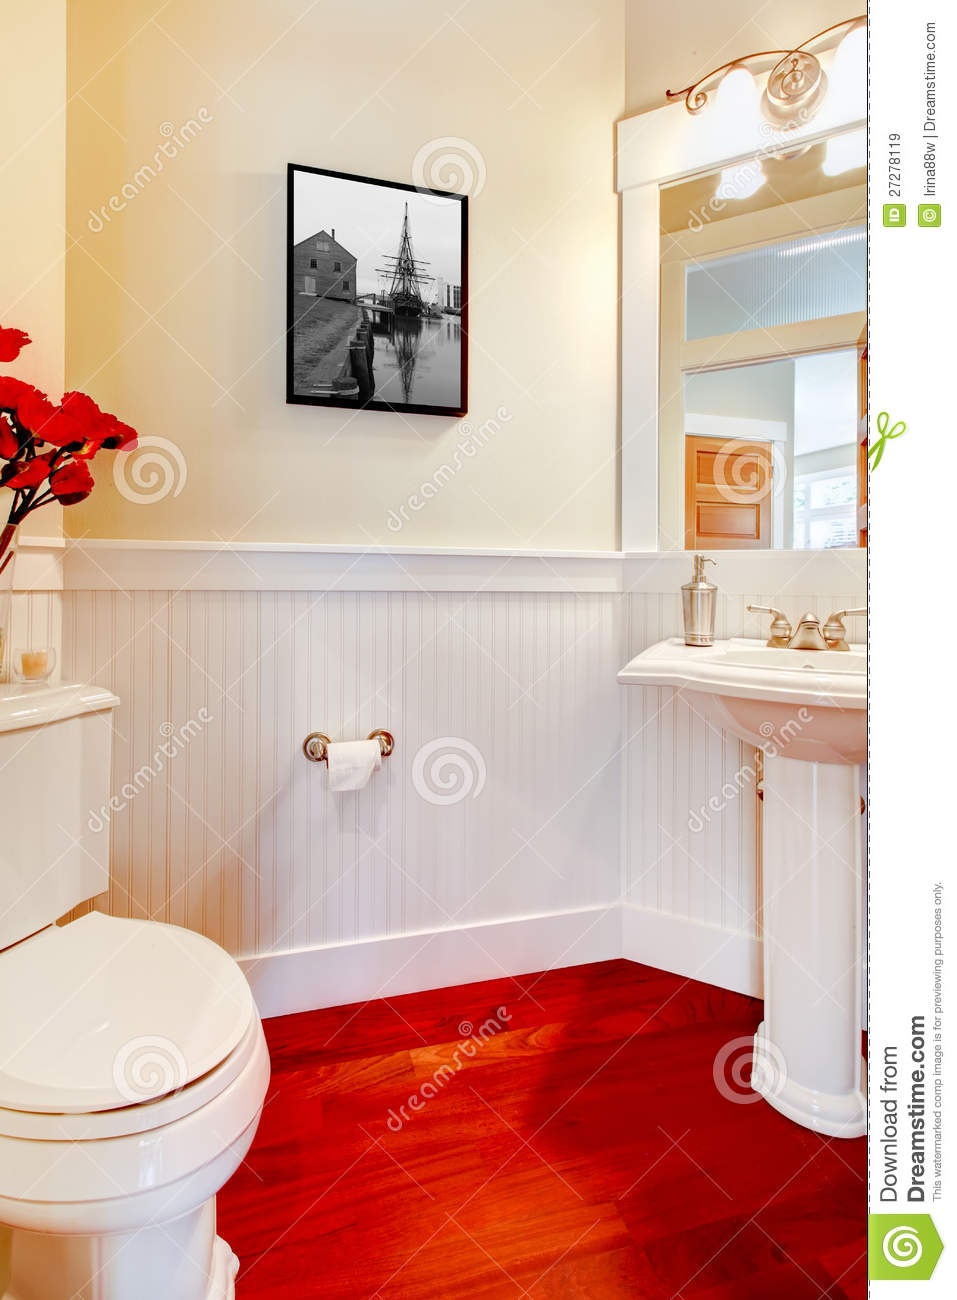 Baño Blanco Suelo Madera:Small White Bathroom with Wood Floors